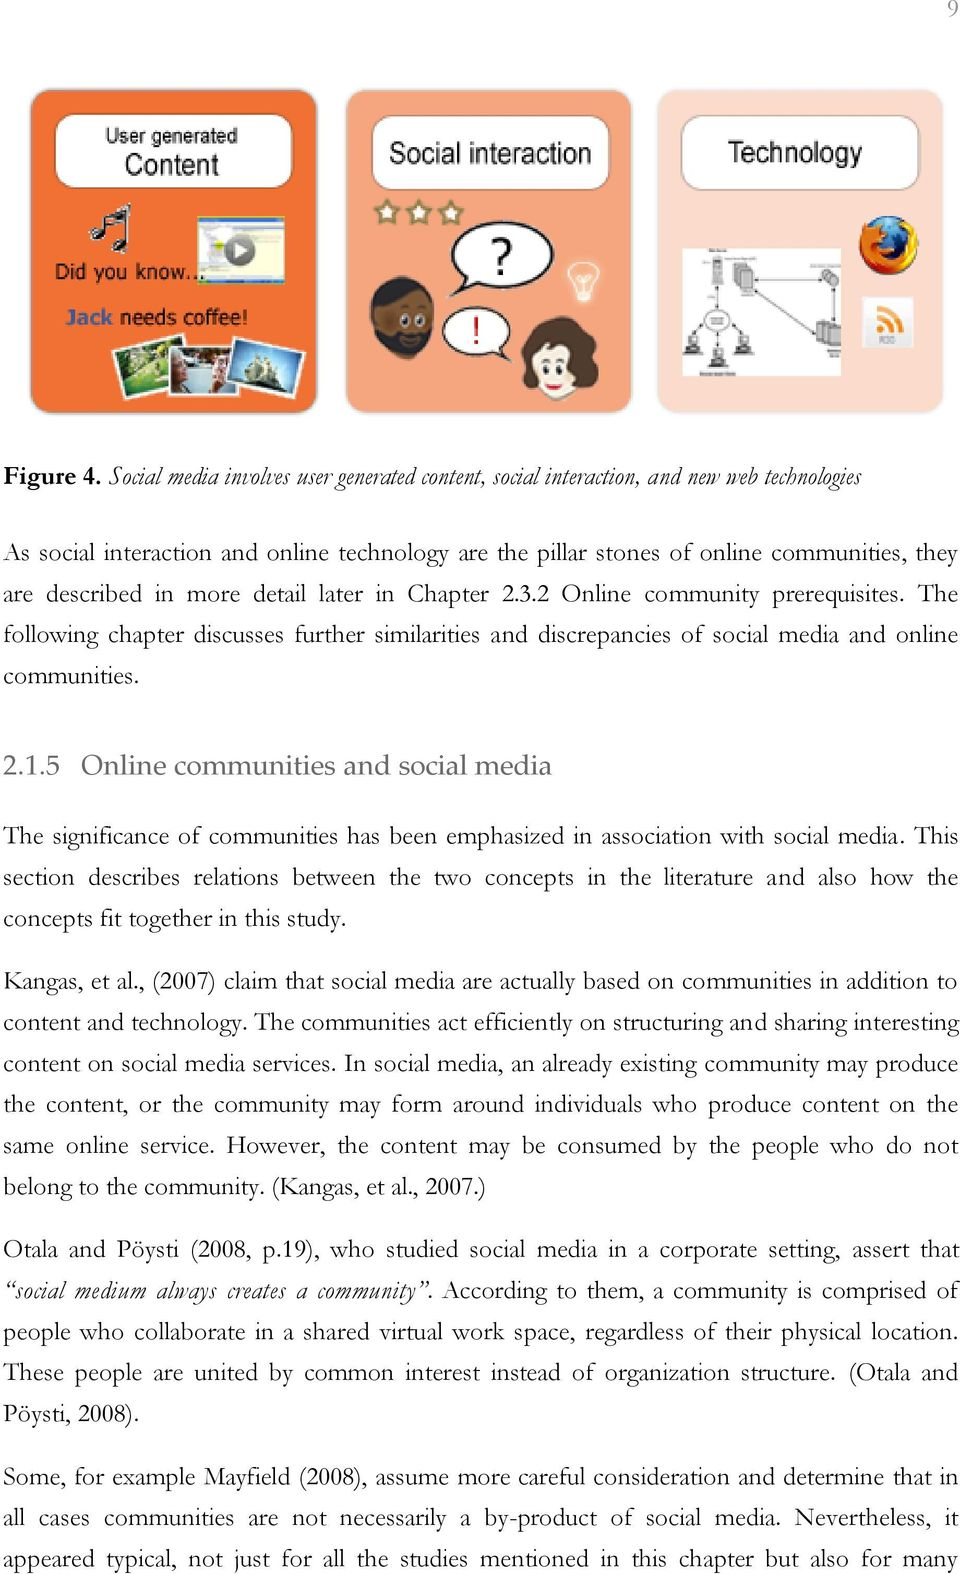 in more detail later in Chapter 2.3.2 Online community prerequisites. The following chapter discusses further similarities and discrepancies of social media and online communities. 2.1.